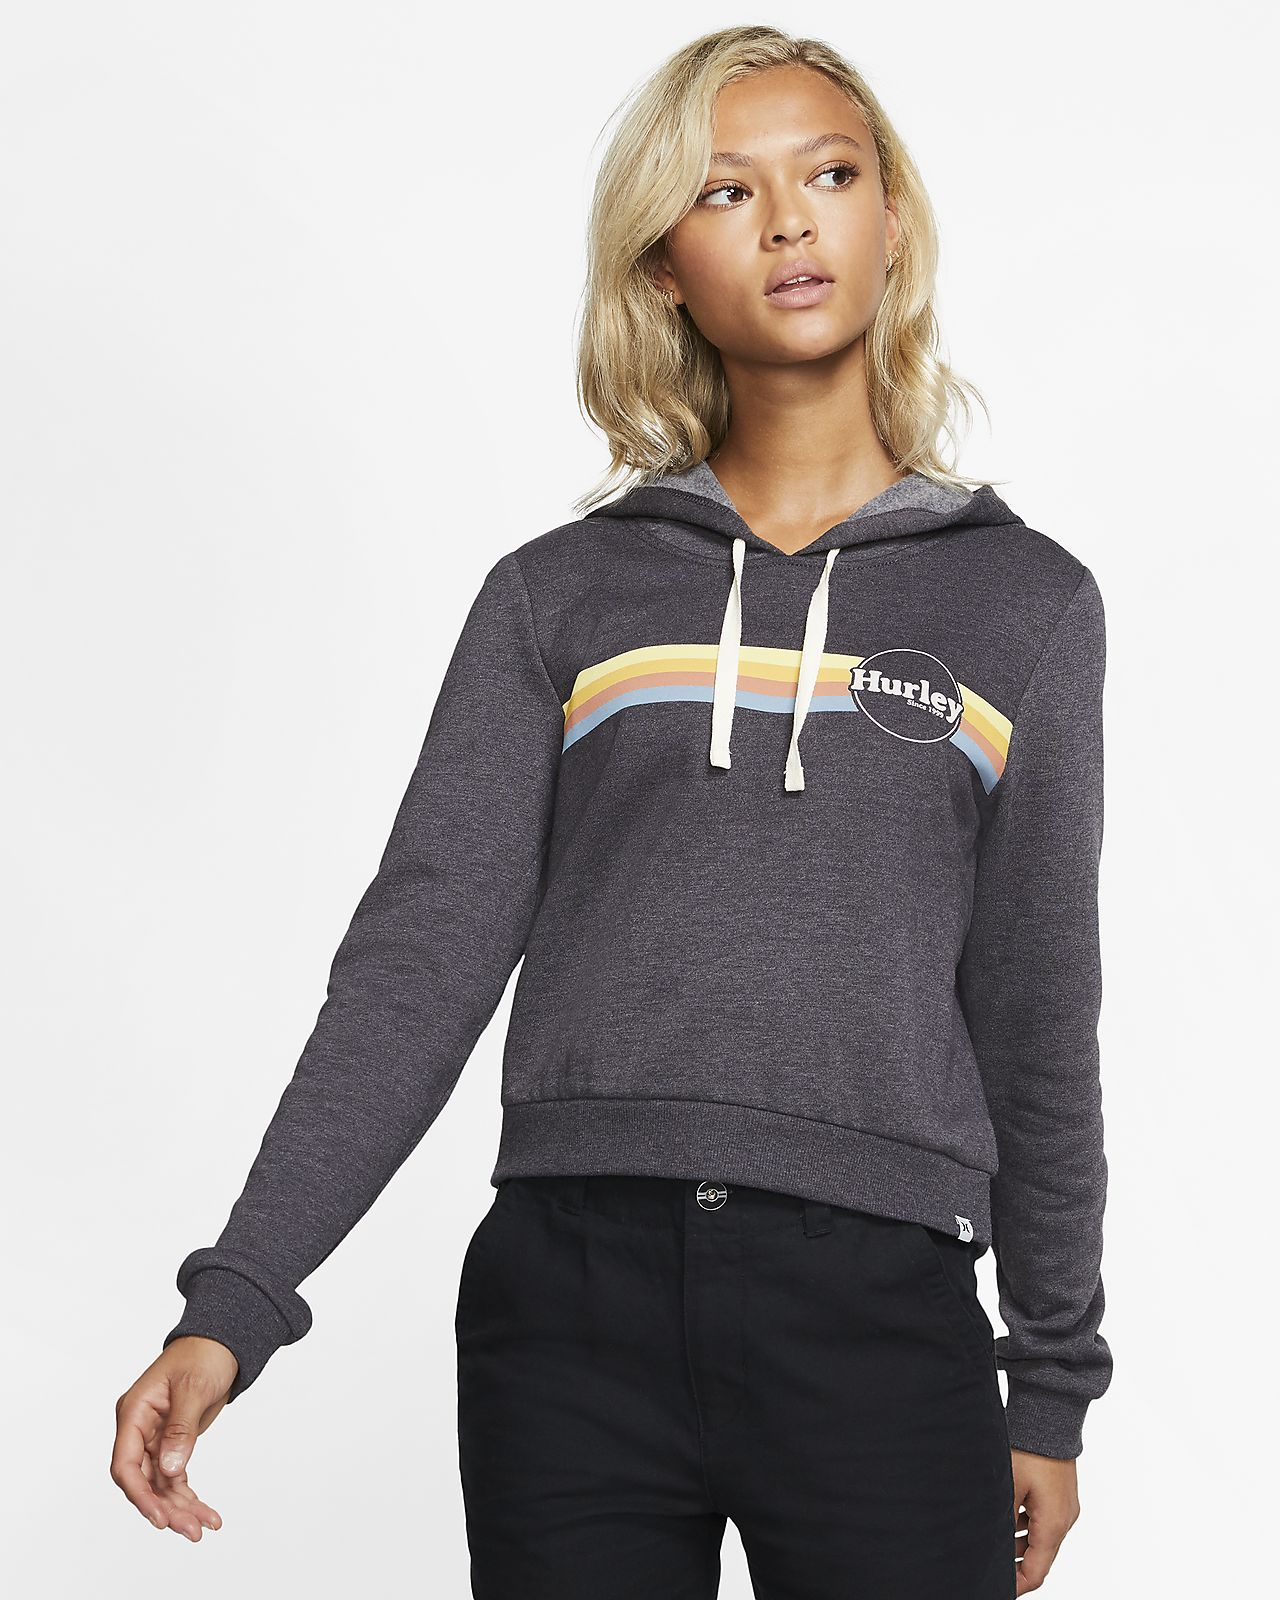 Hurley Jammer Stripe Perfect Women's Cropped Fleece Pullover